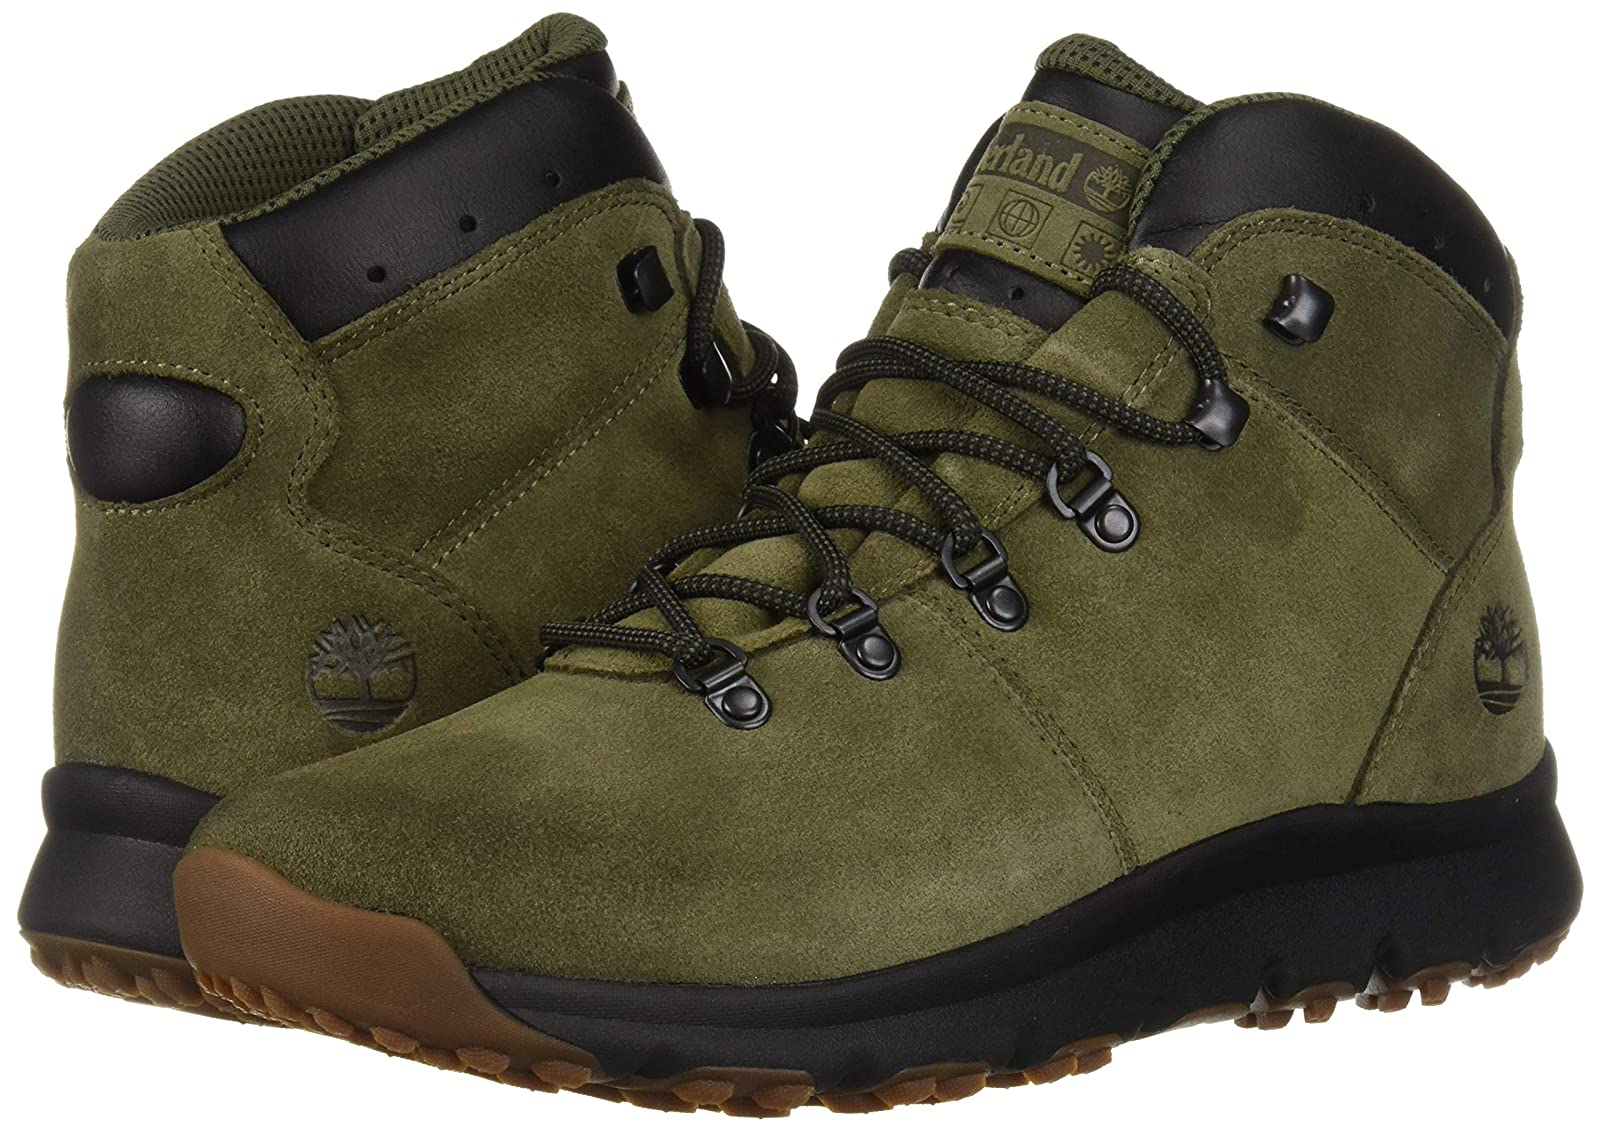 Timberland Men's World Hiker Mid Ankle TB0A1RJWA58 - 5